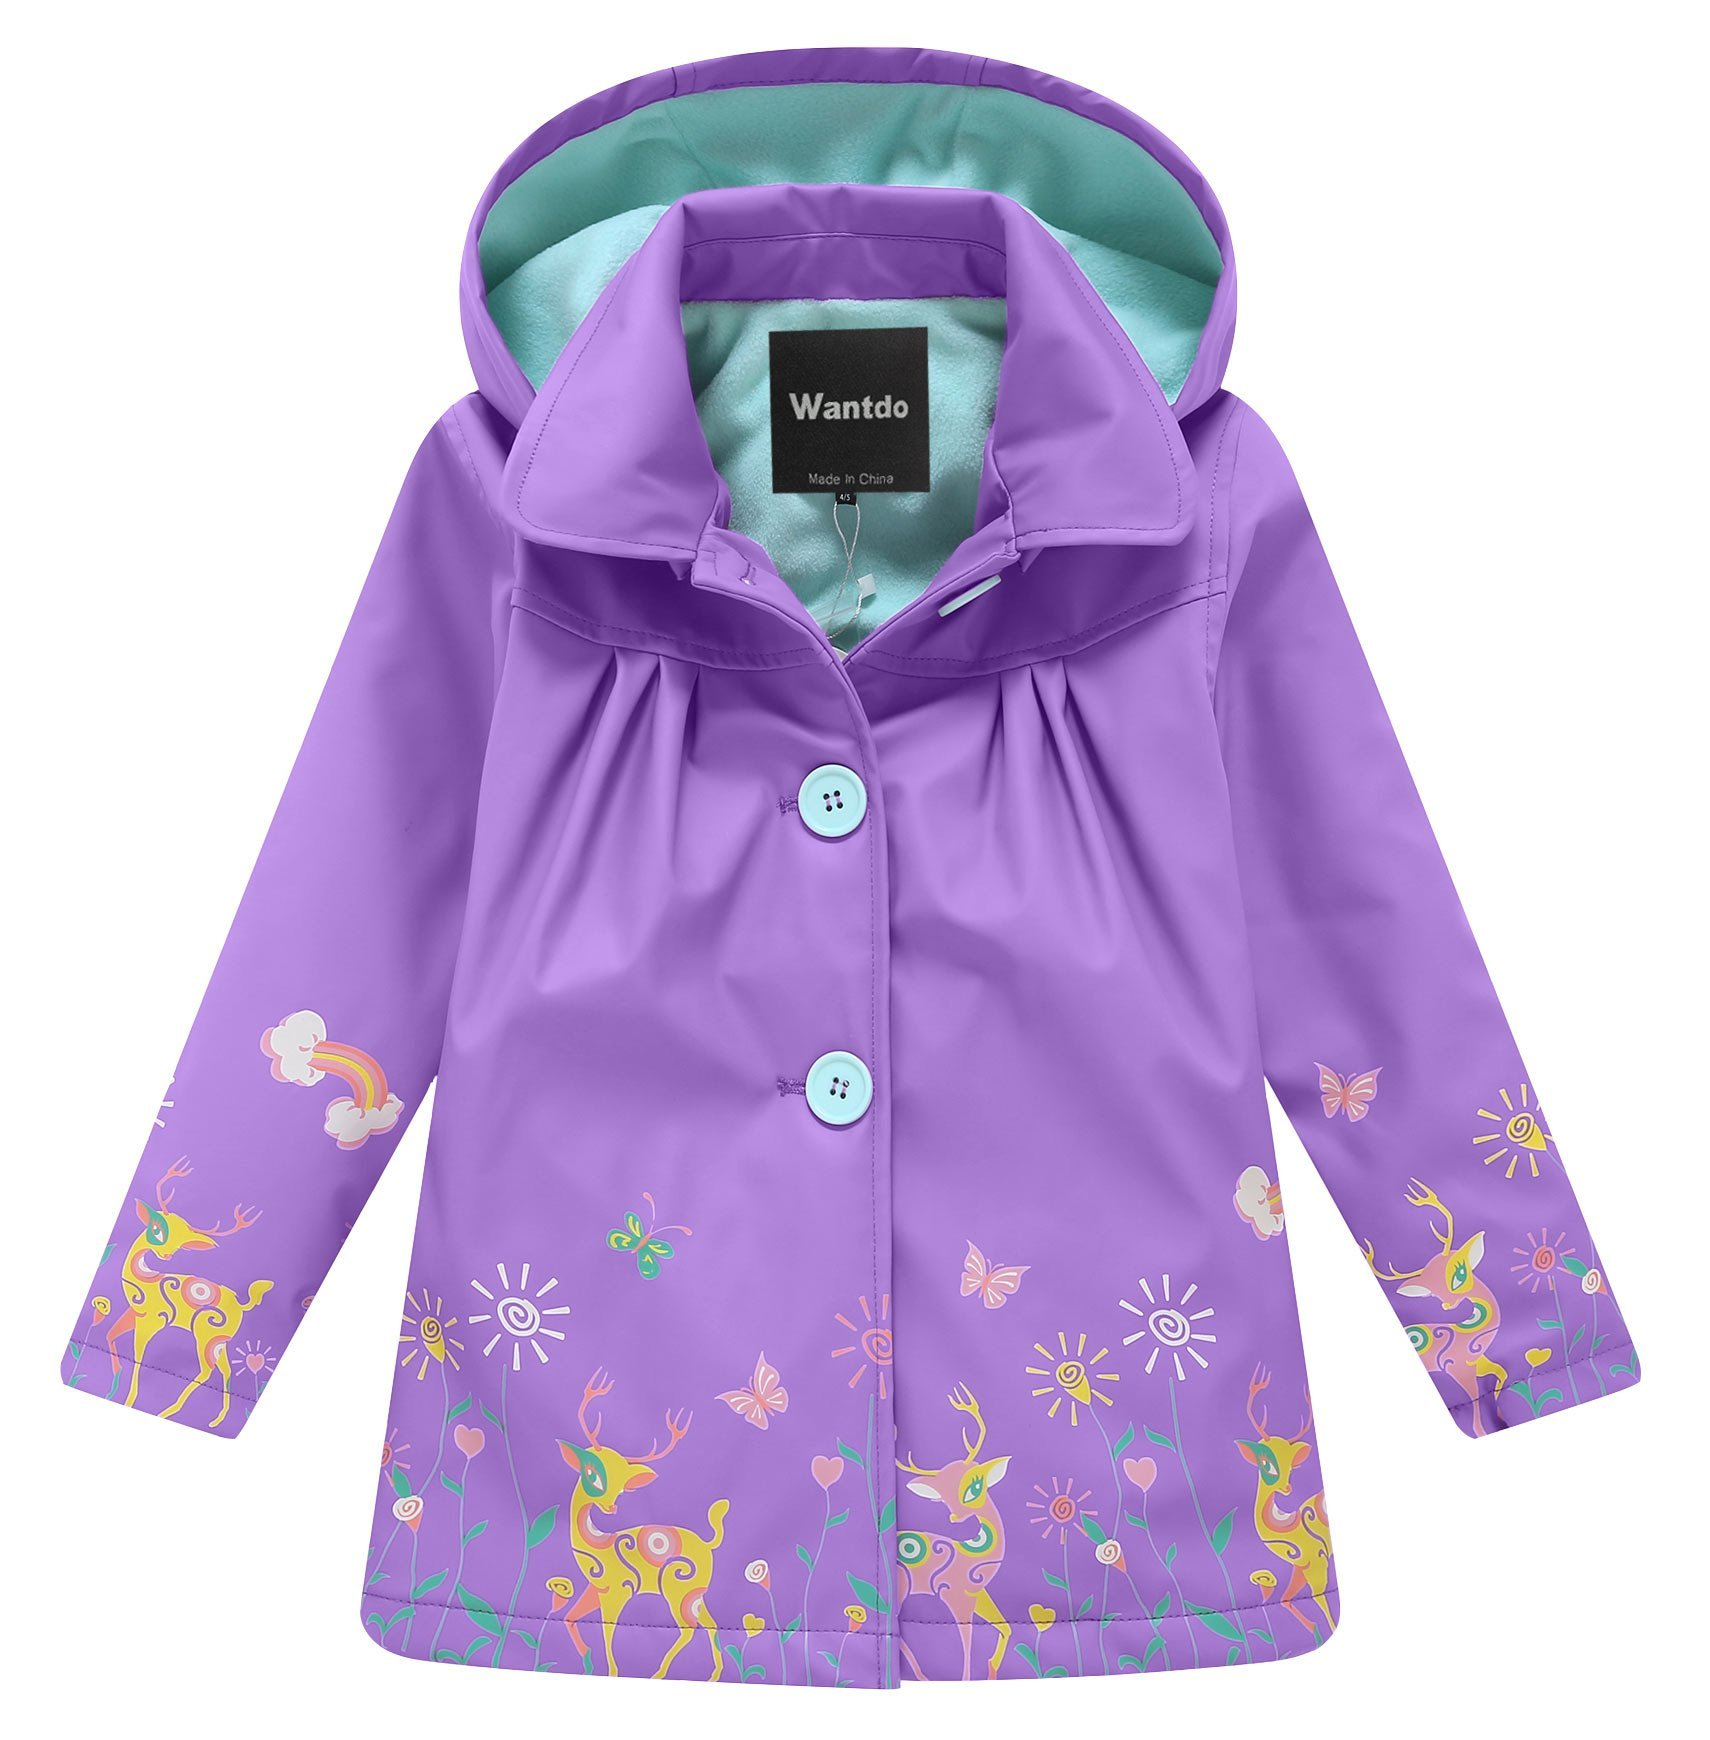 Wantdo Girl's and Boy's Hooded Rain Jacket Windproof Fleece Raincoat(Purple, 7-8Y) by Wantdo